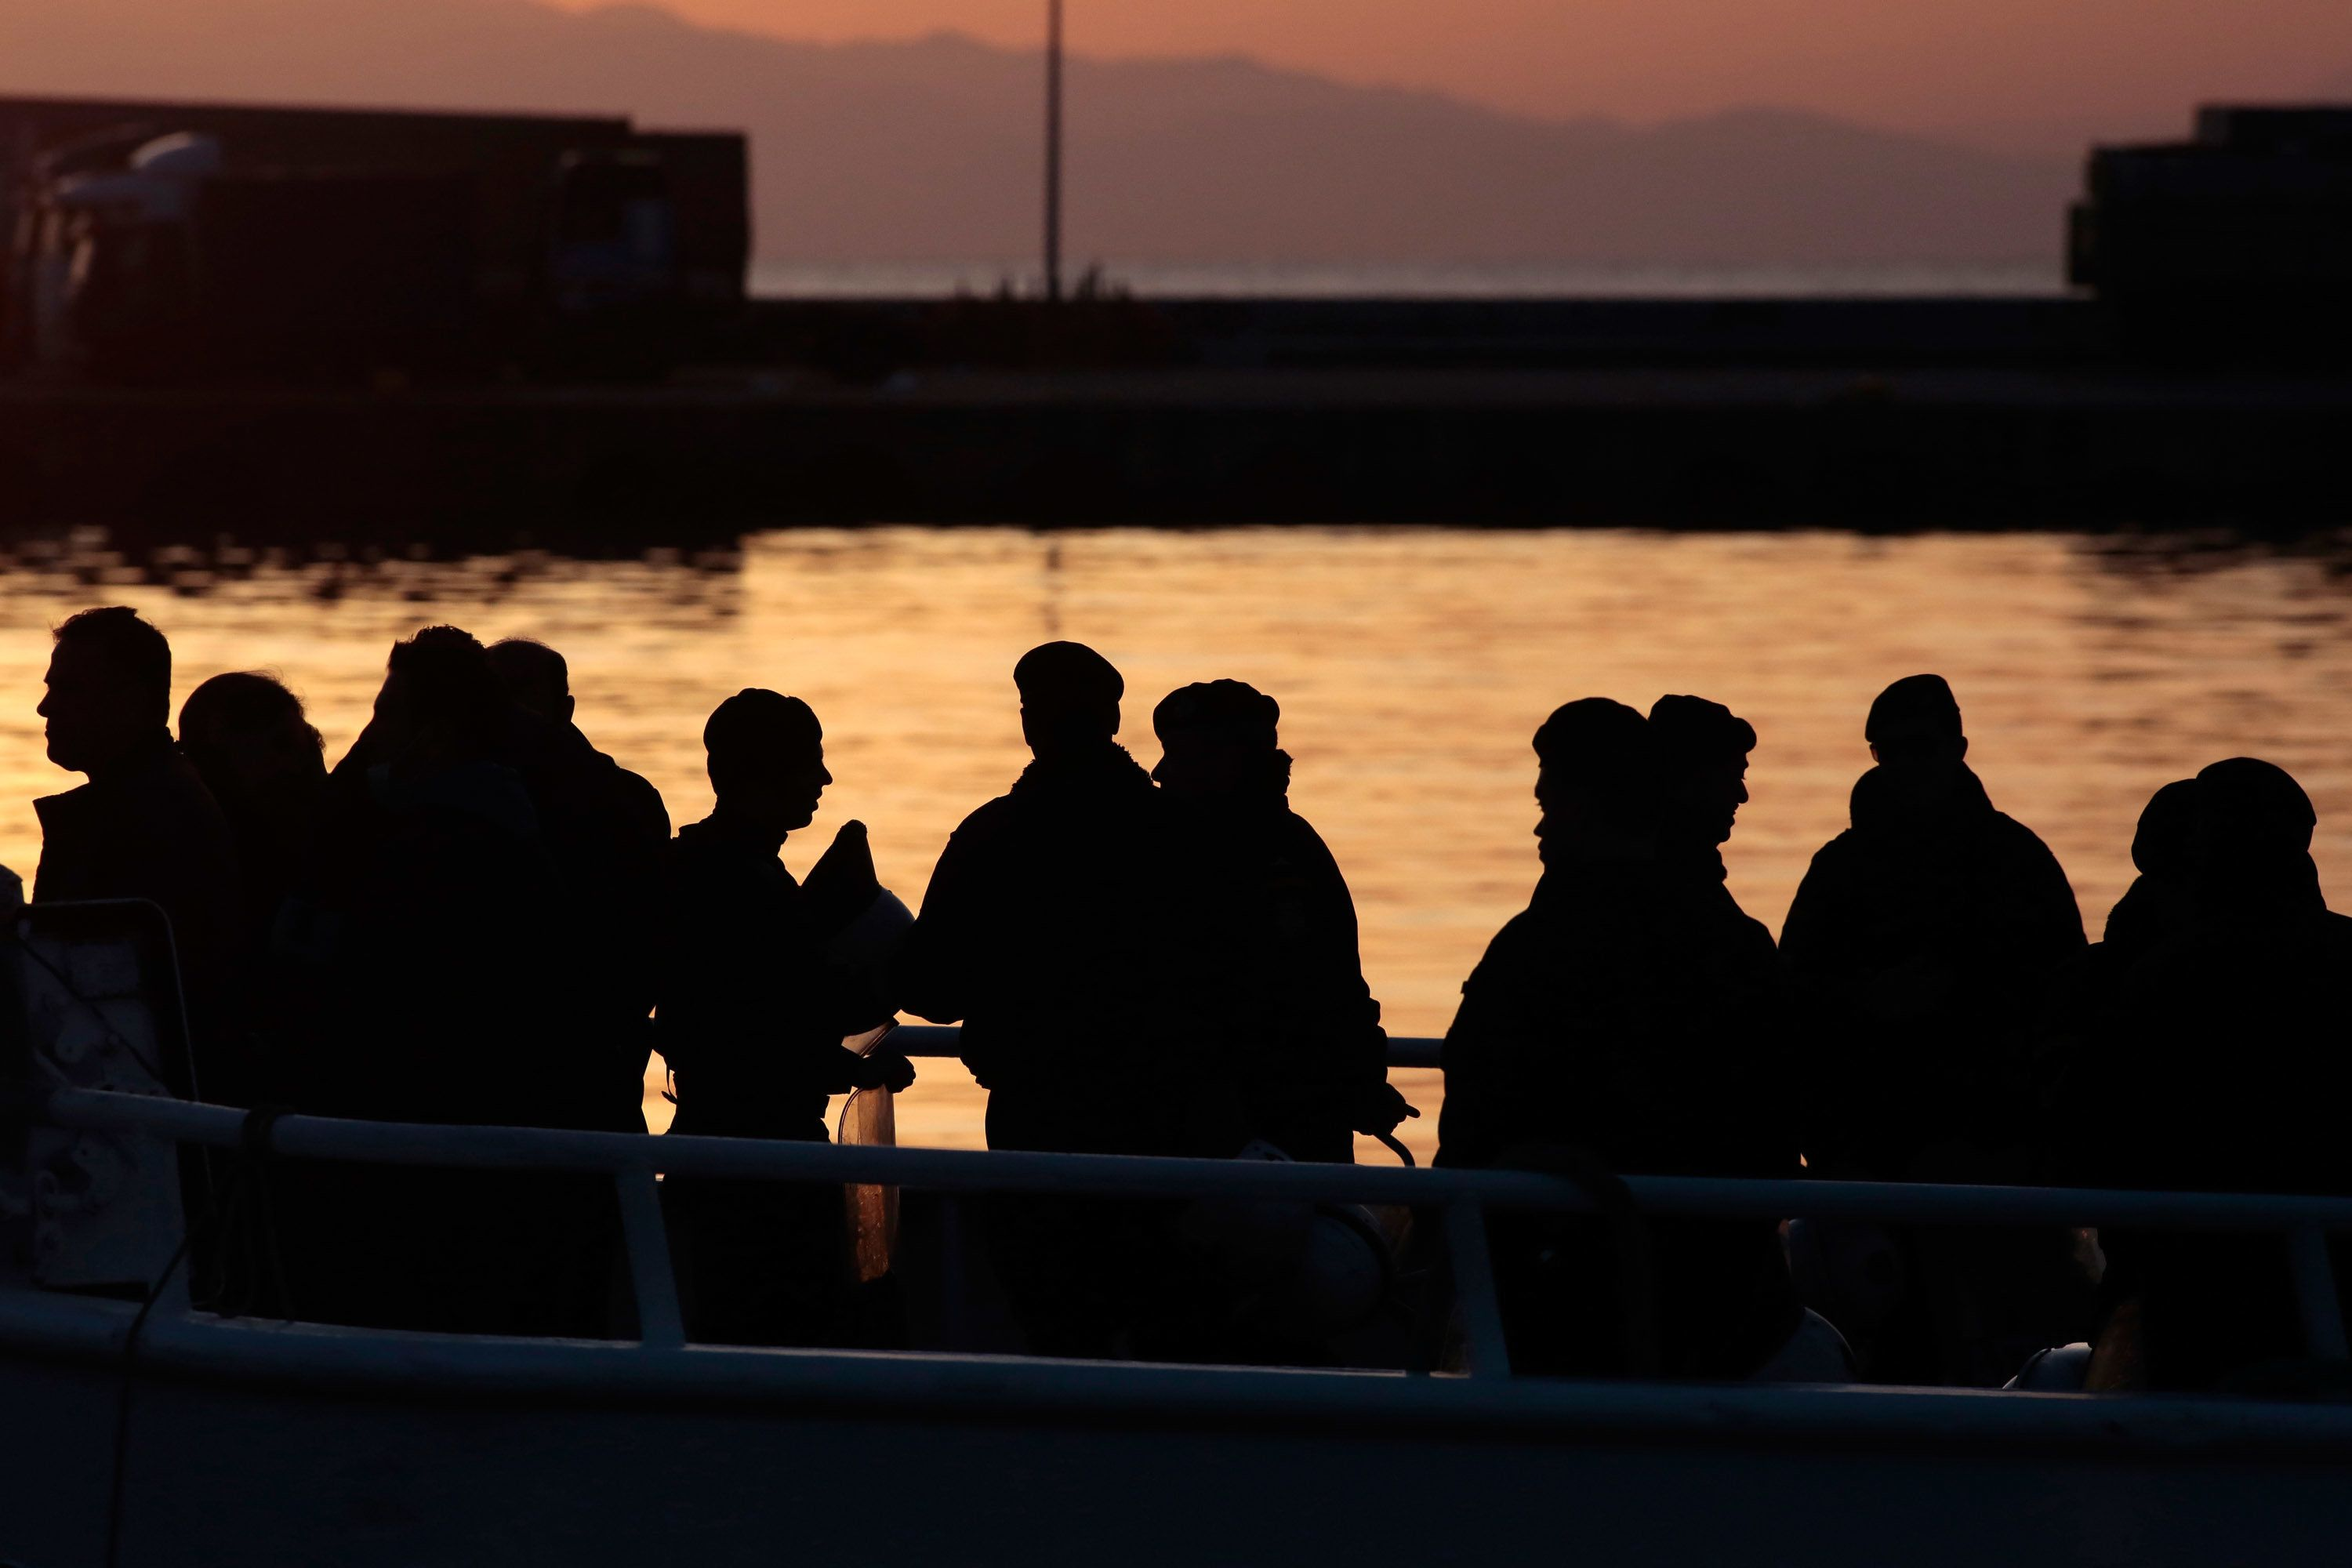 More than 1600 illegal migrants nabbed in Turkey